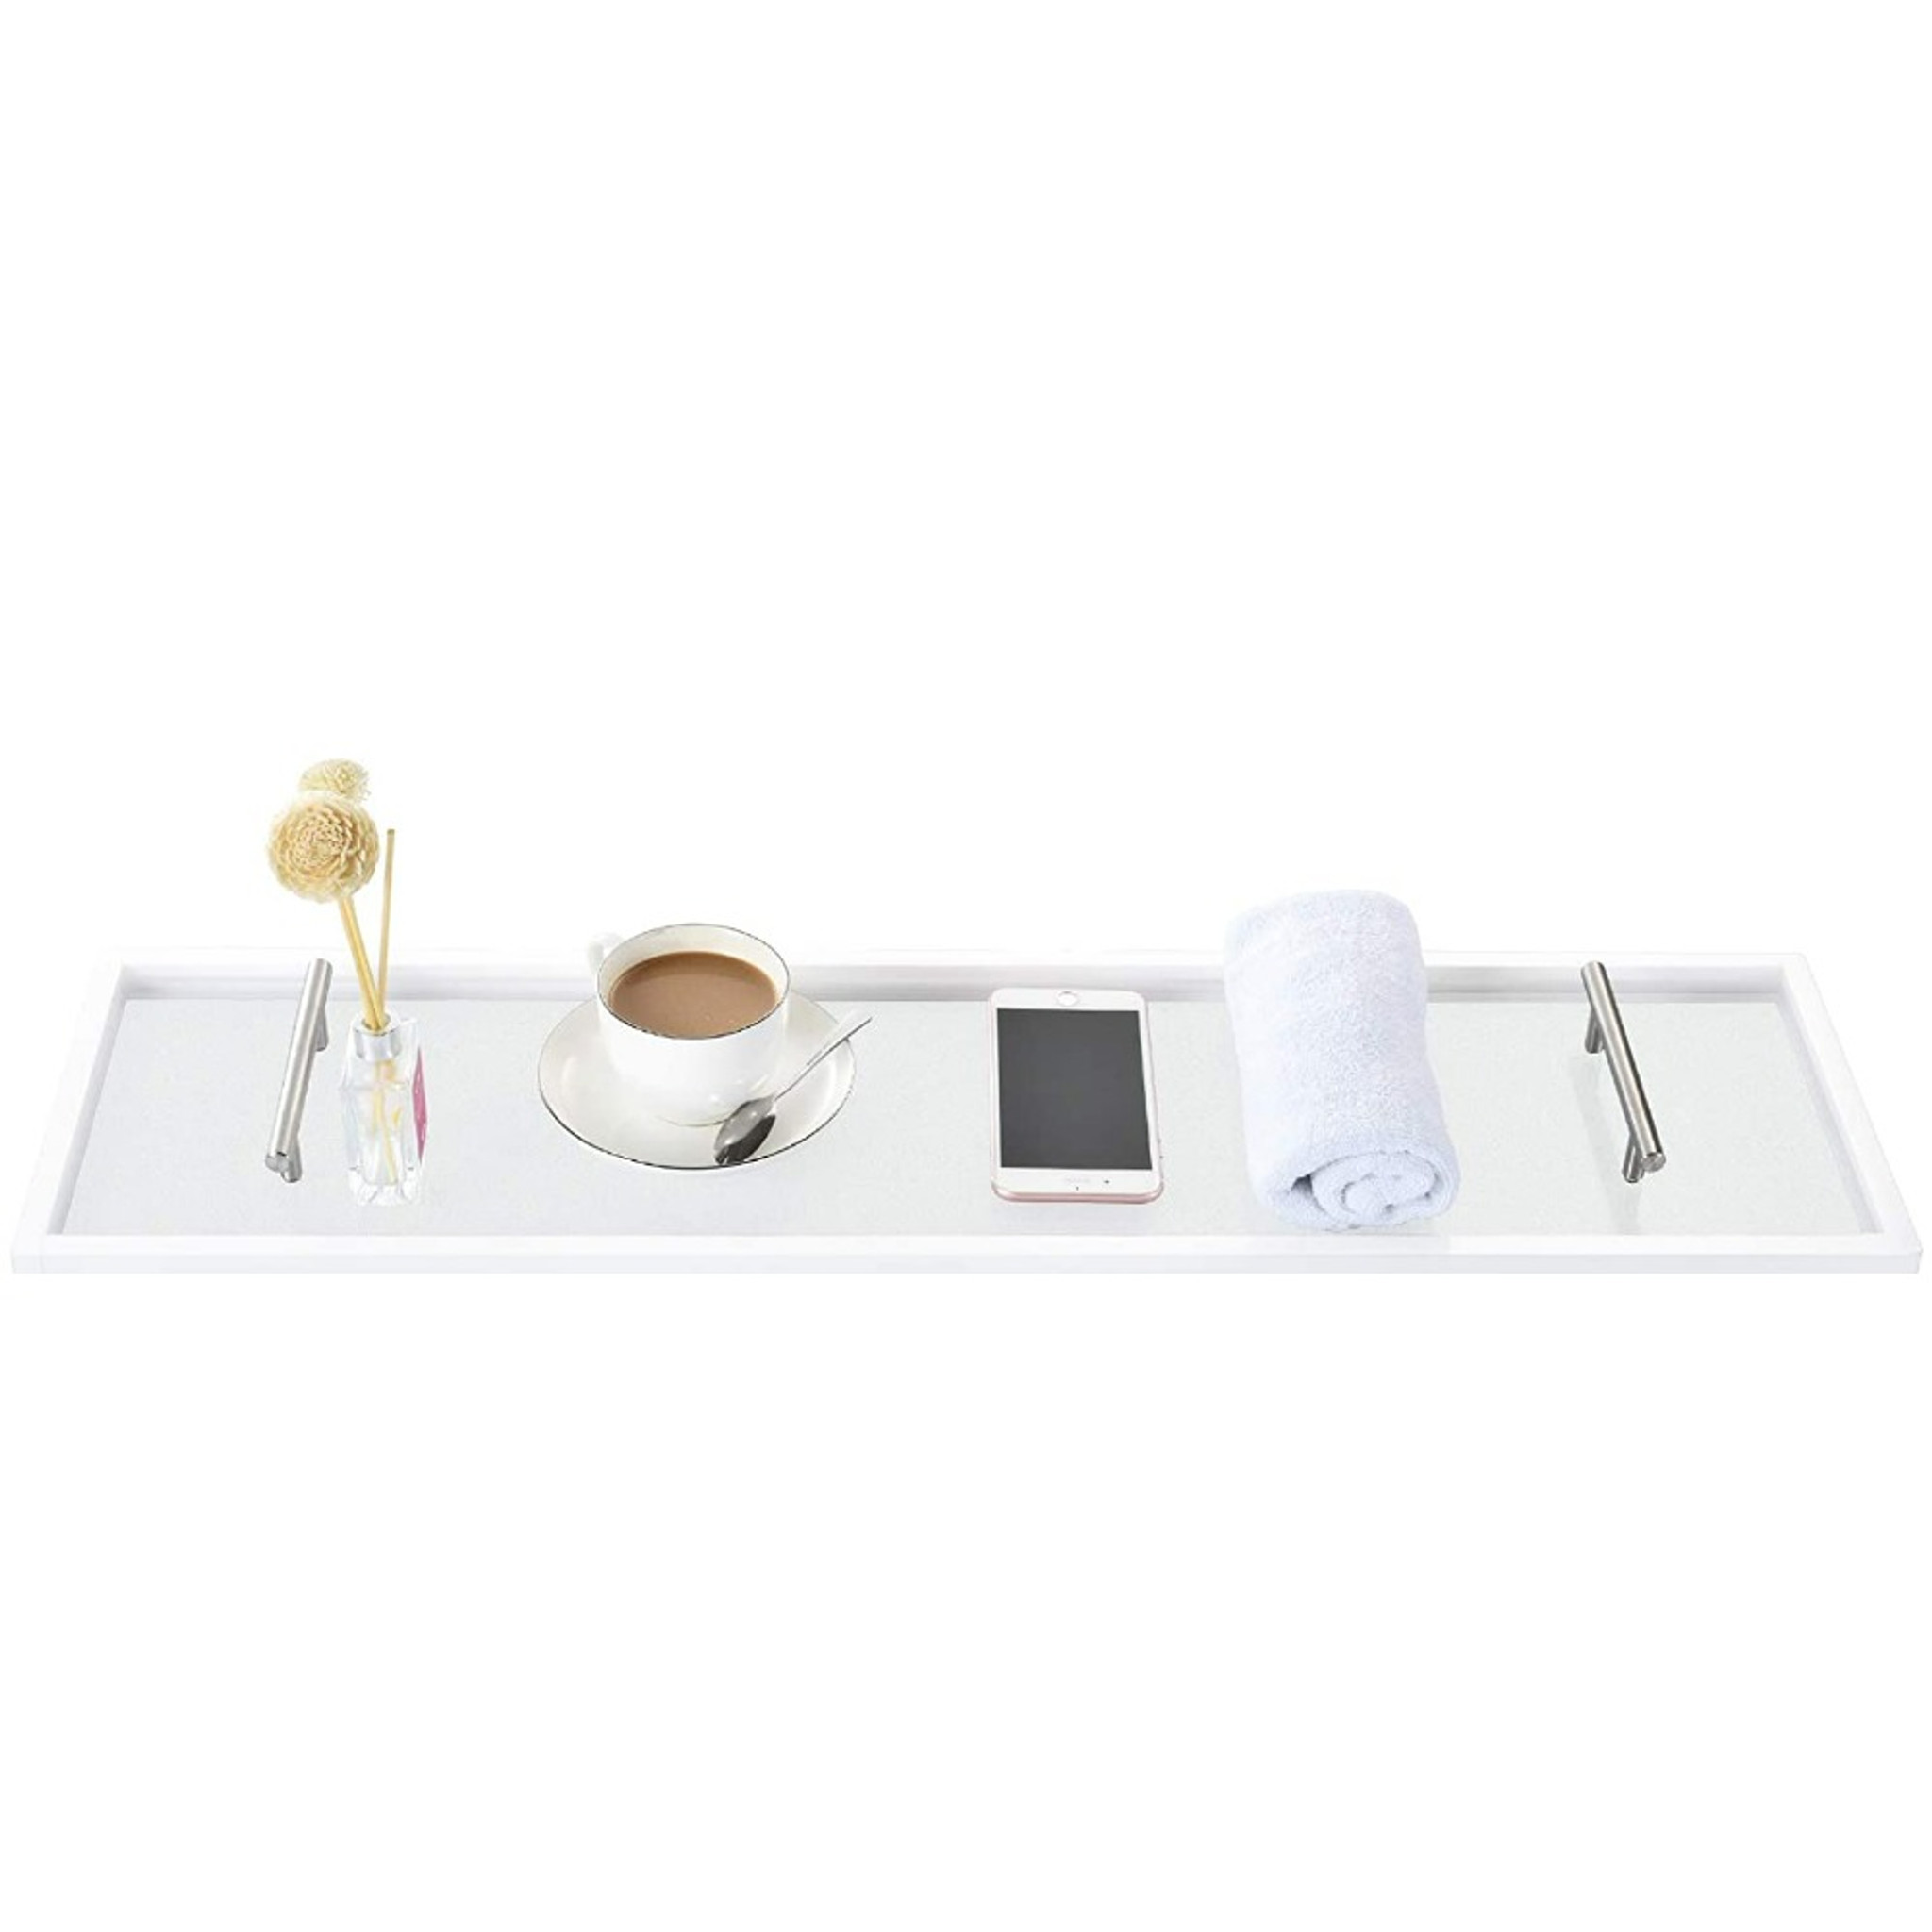 frosted acrylic lucite bath caddy silver handles